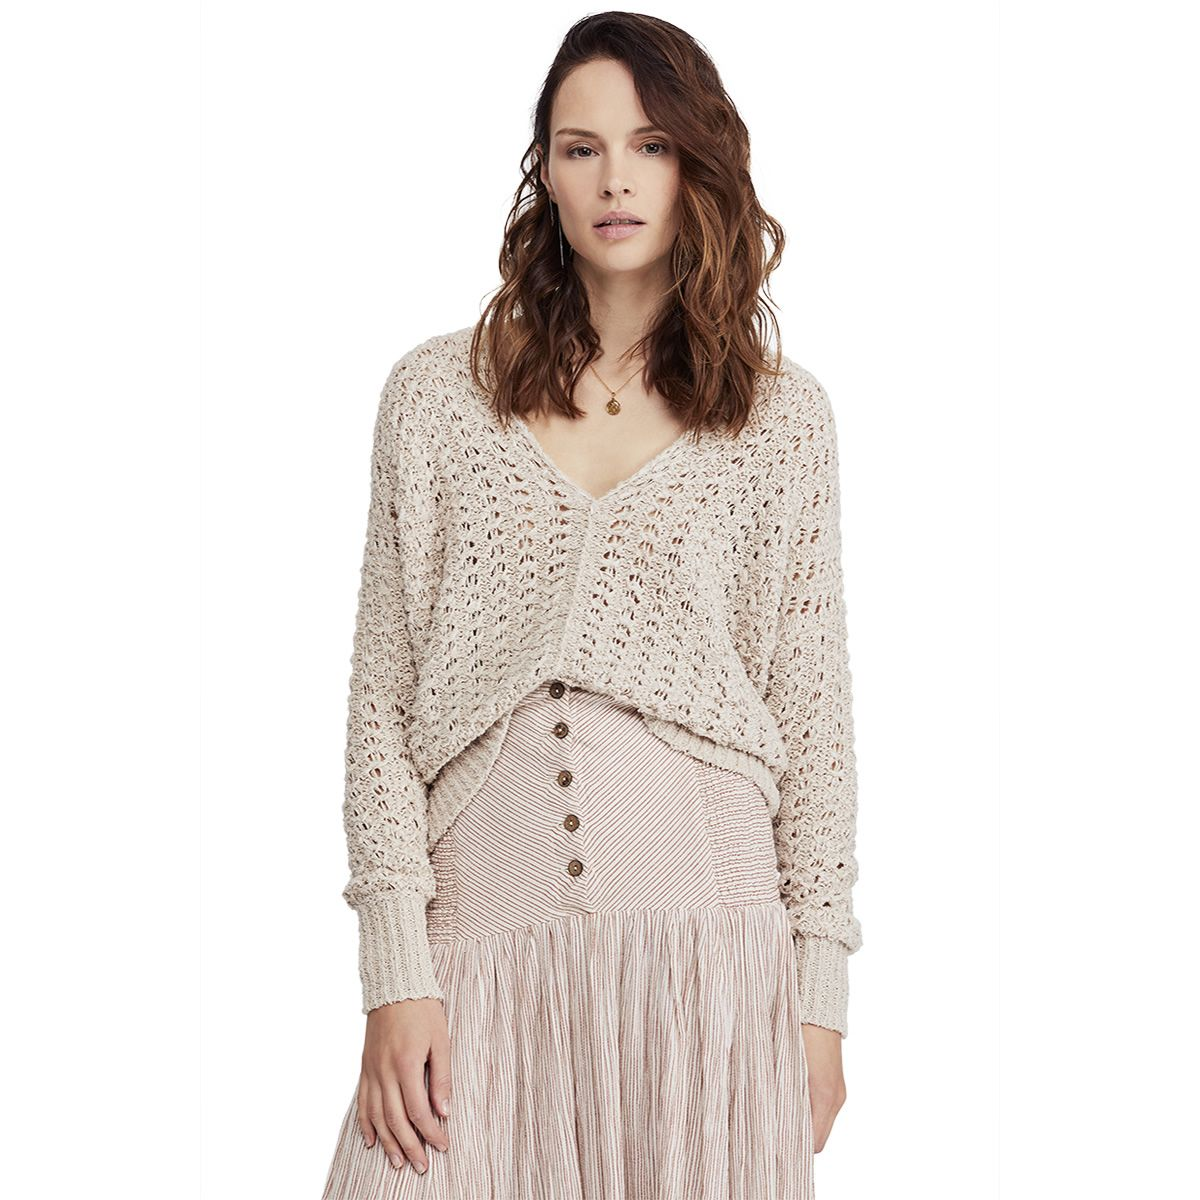 01335d06a8c53 Free People Clothing - Womens Apparel - Macy s